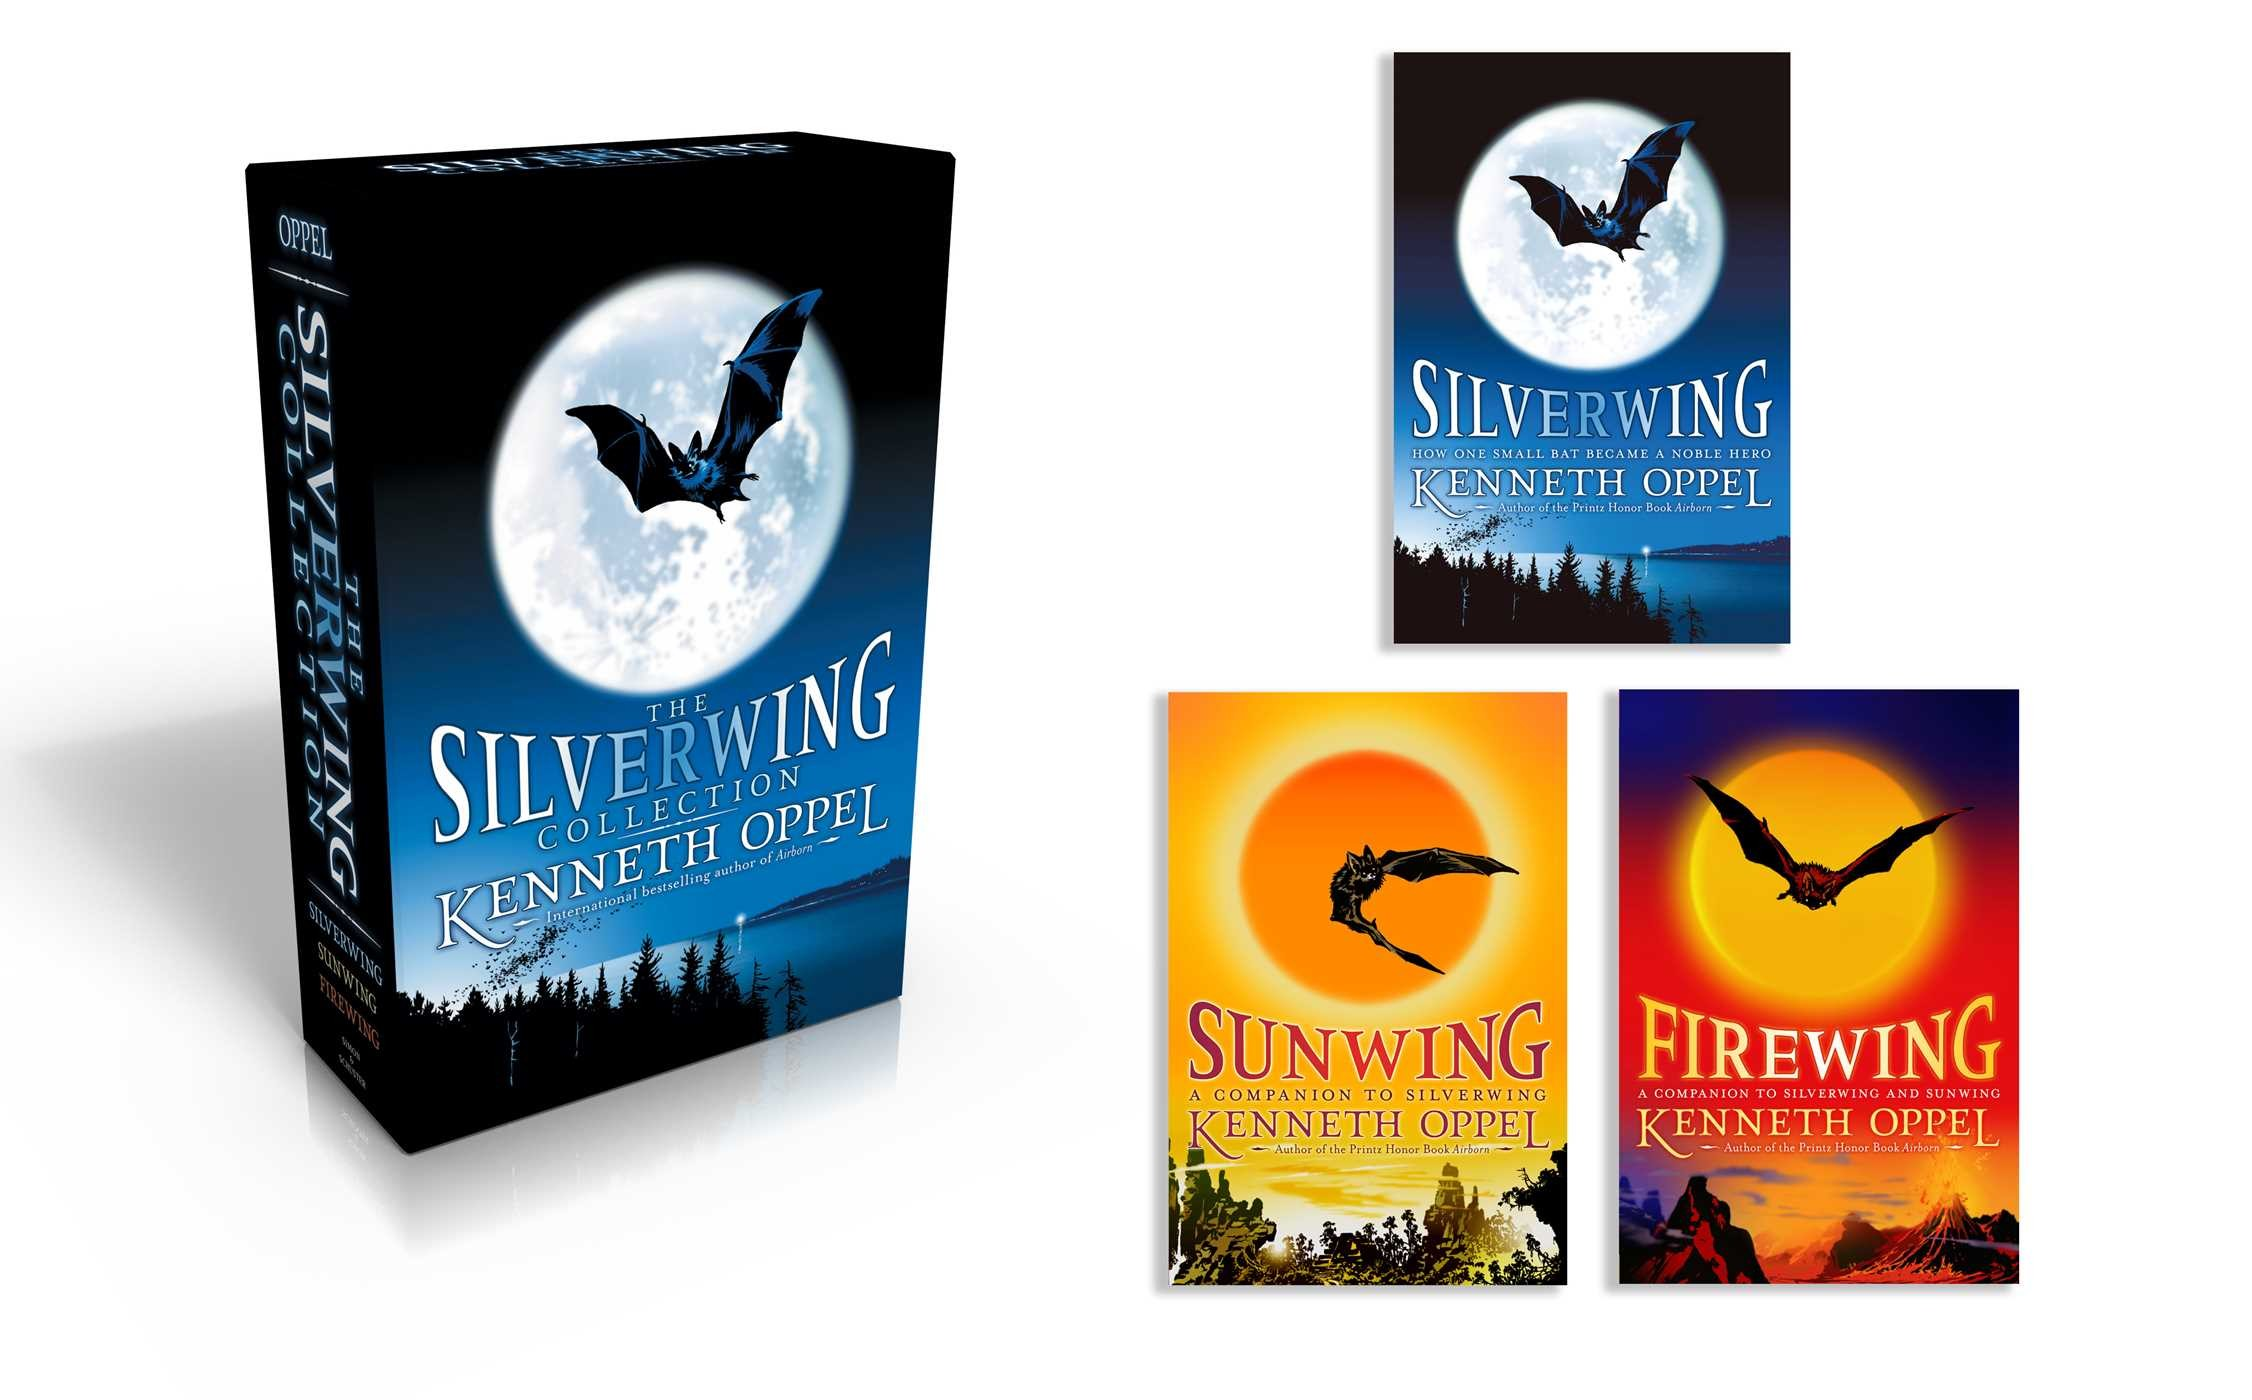 The silverwing collection 9781481427258.in01